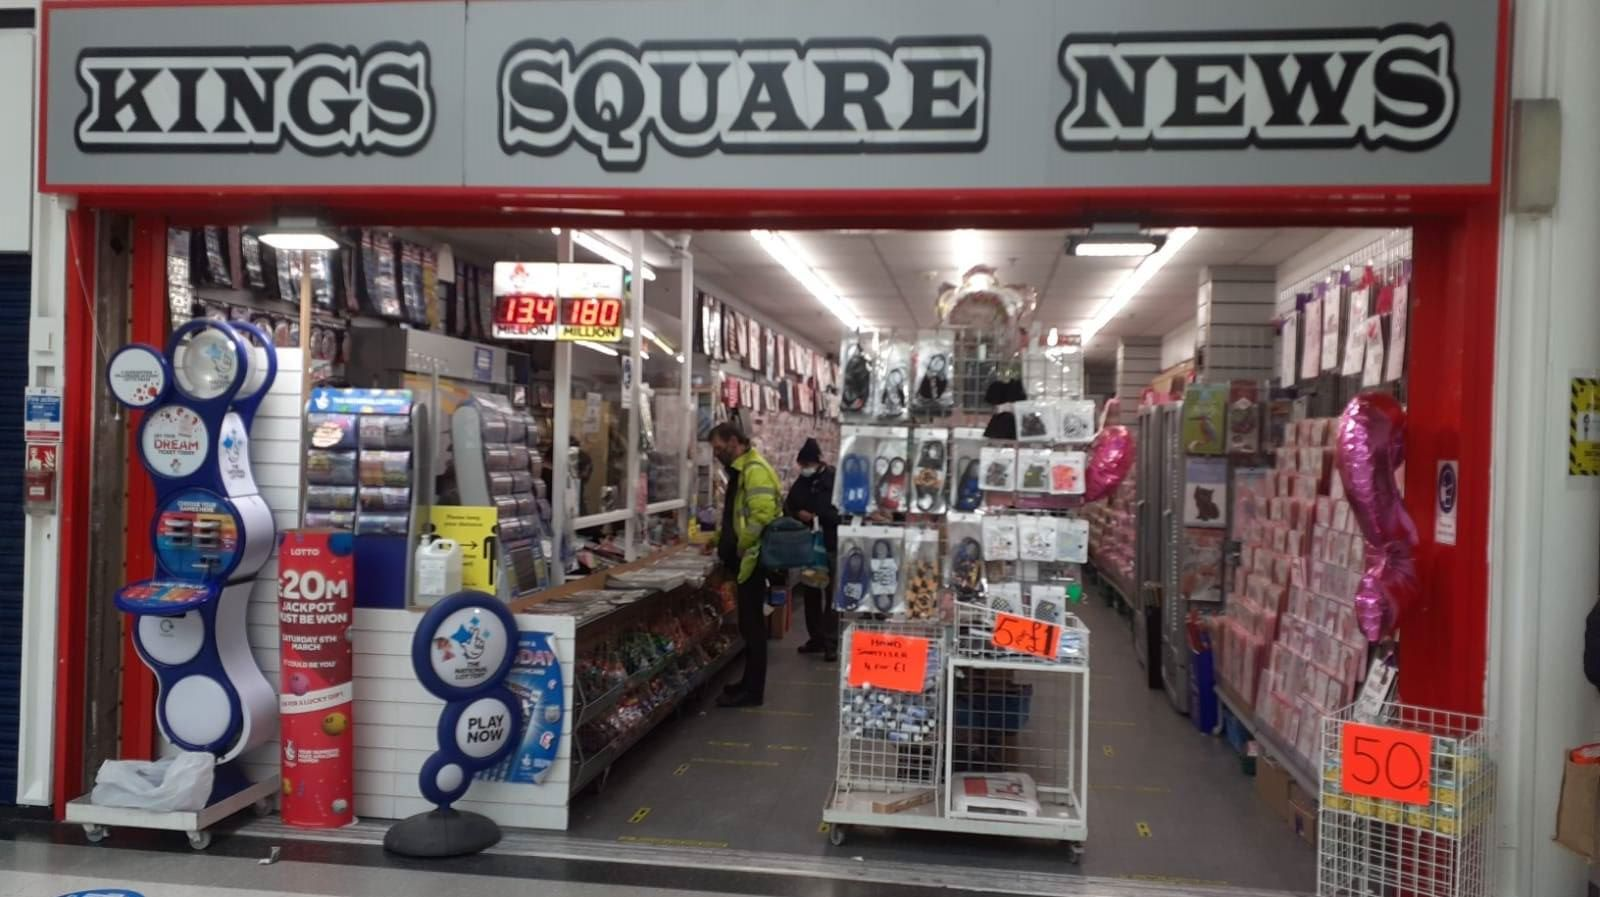 Promoting the Newsagents in our BID area